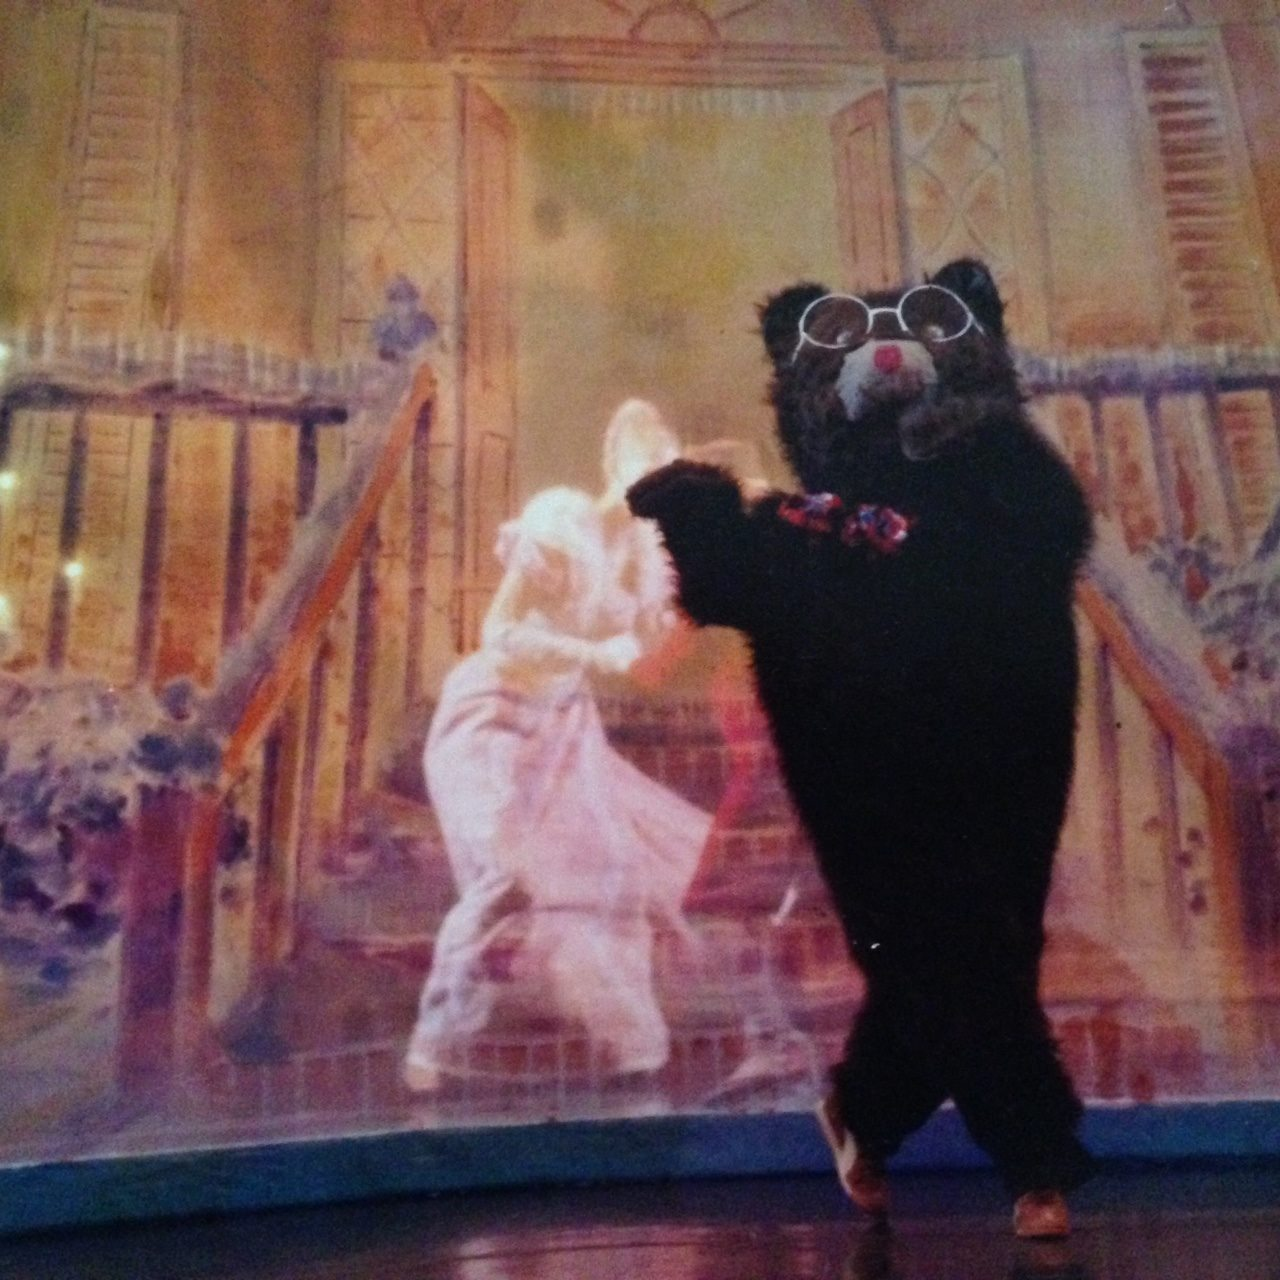 A dancing bear on stage